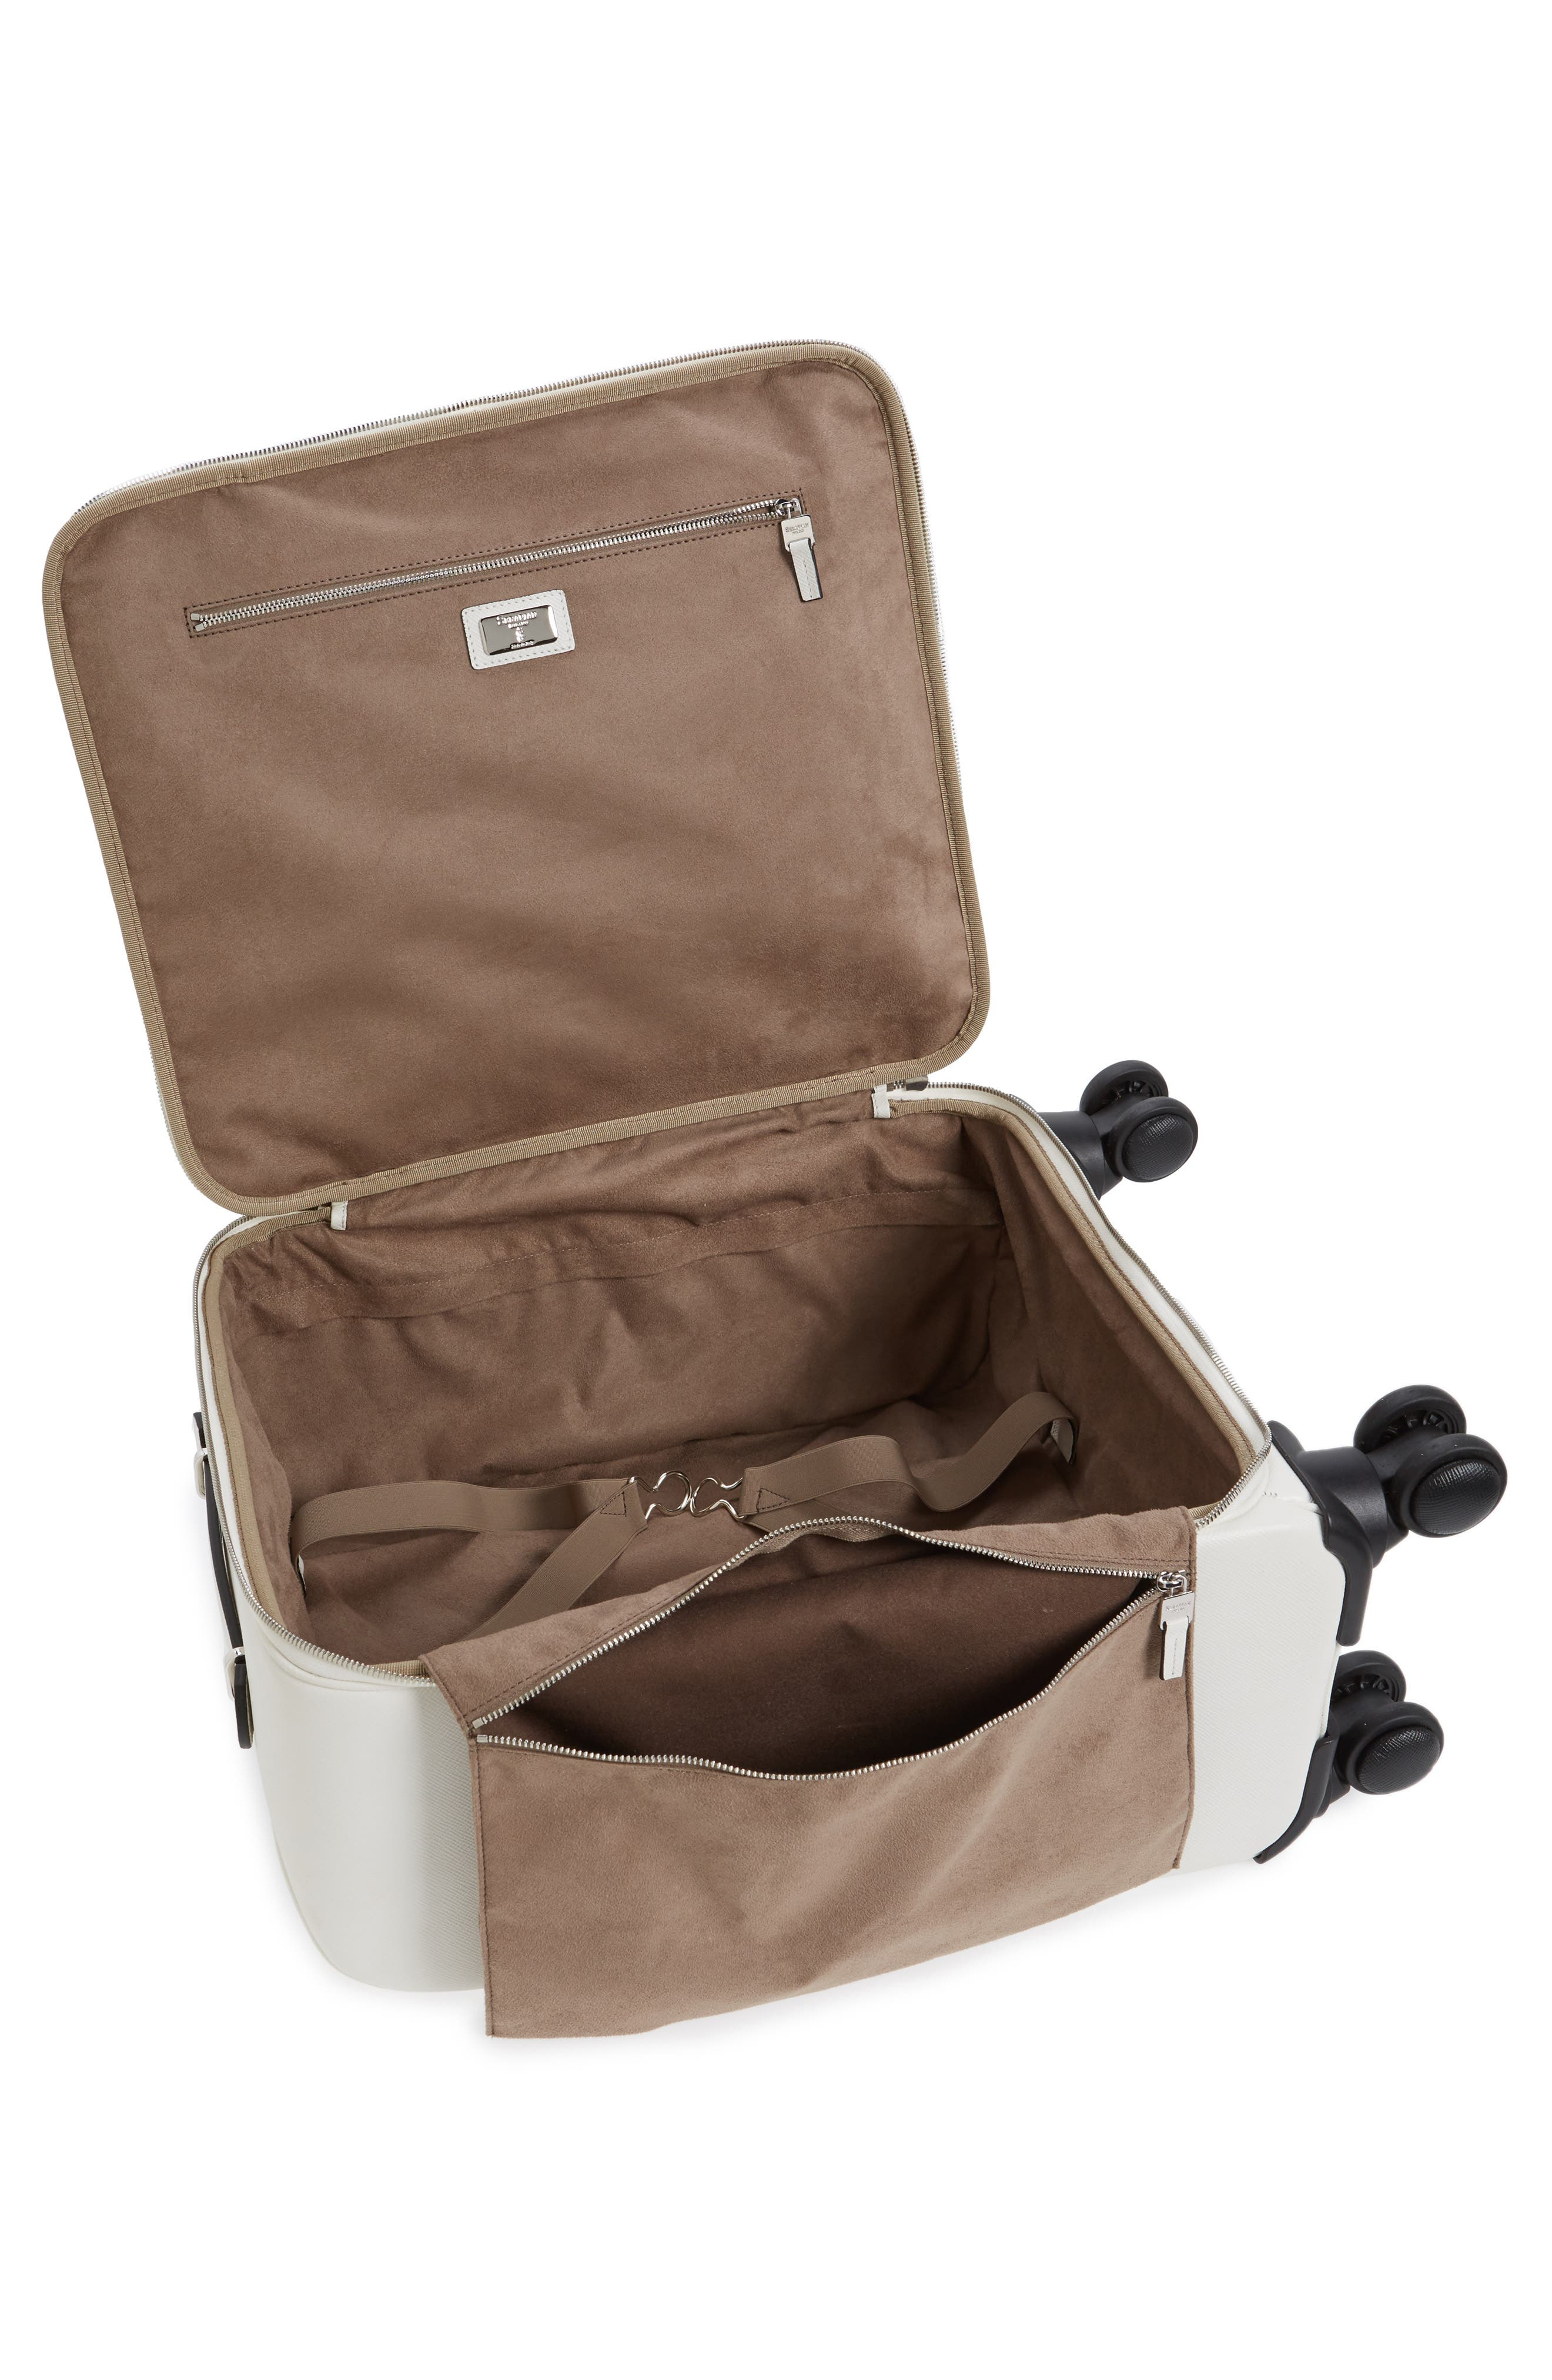 Trolley Spinner Wheeled Carry-On Suitcase,                             Alternate thumbnail 6, color,